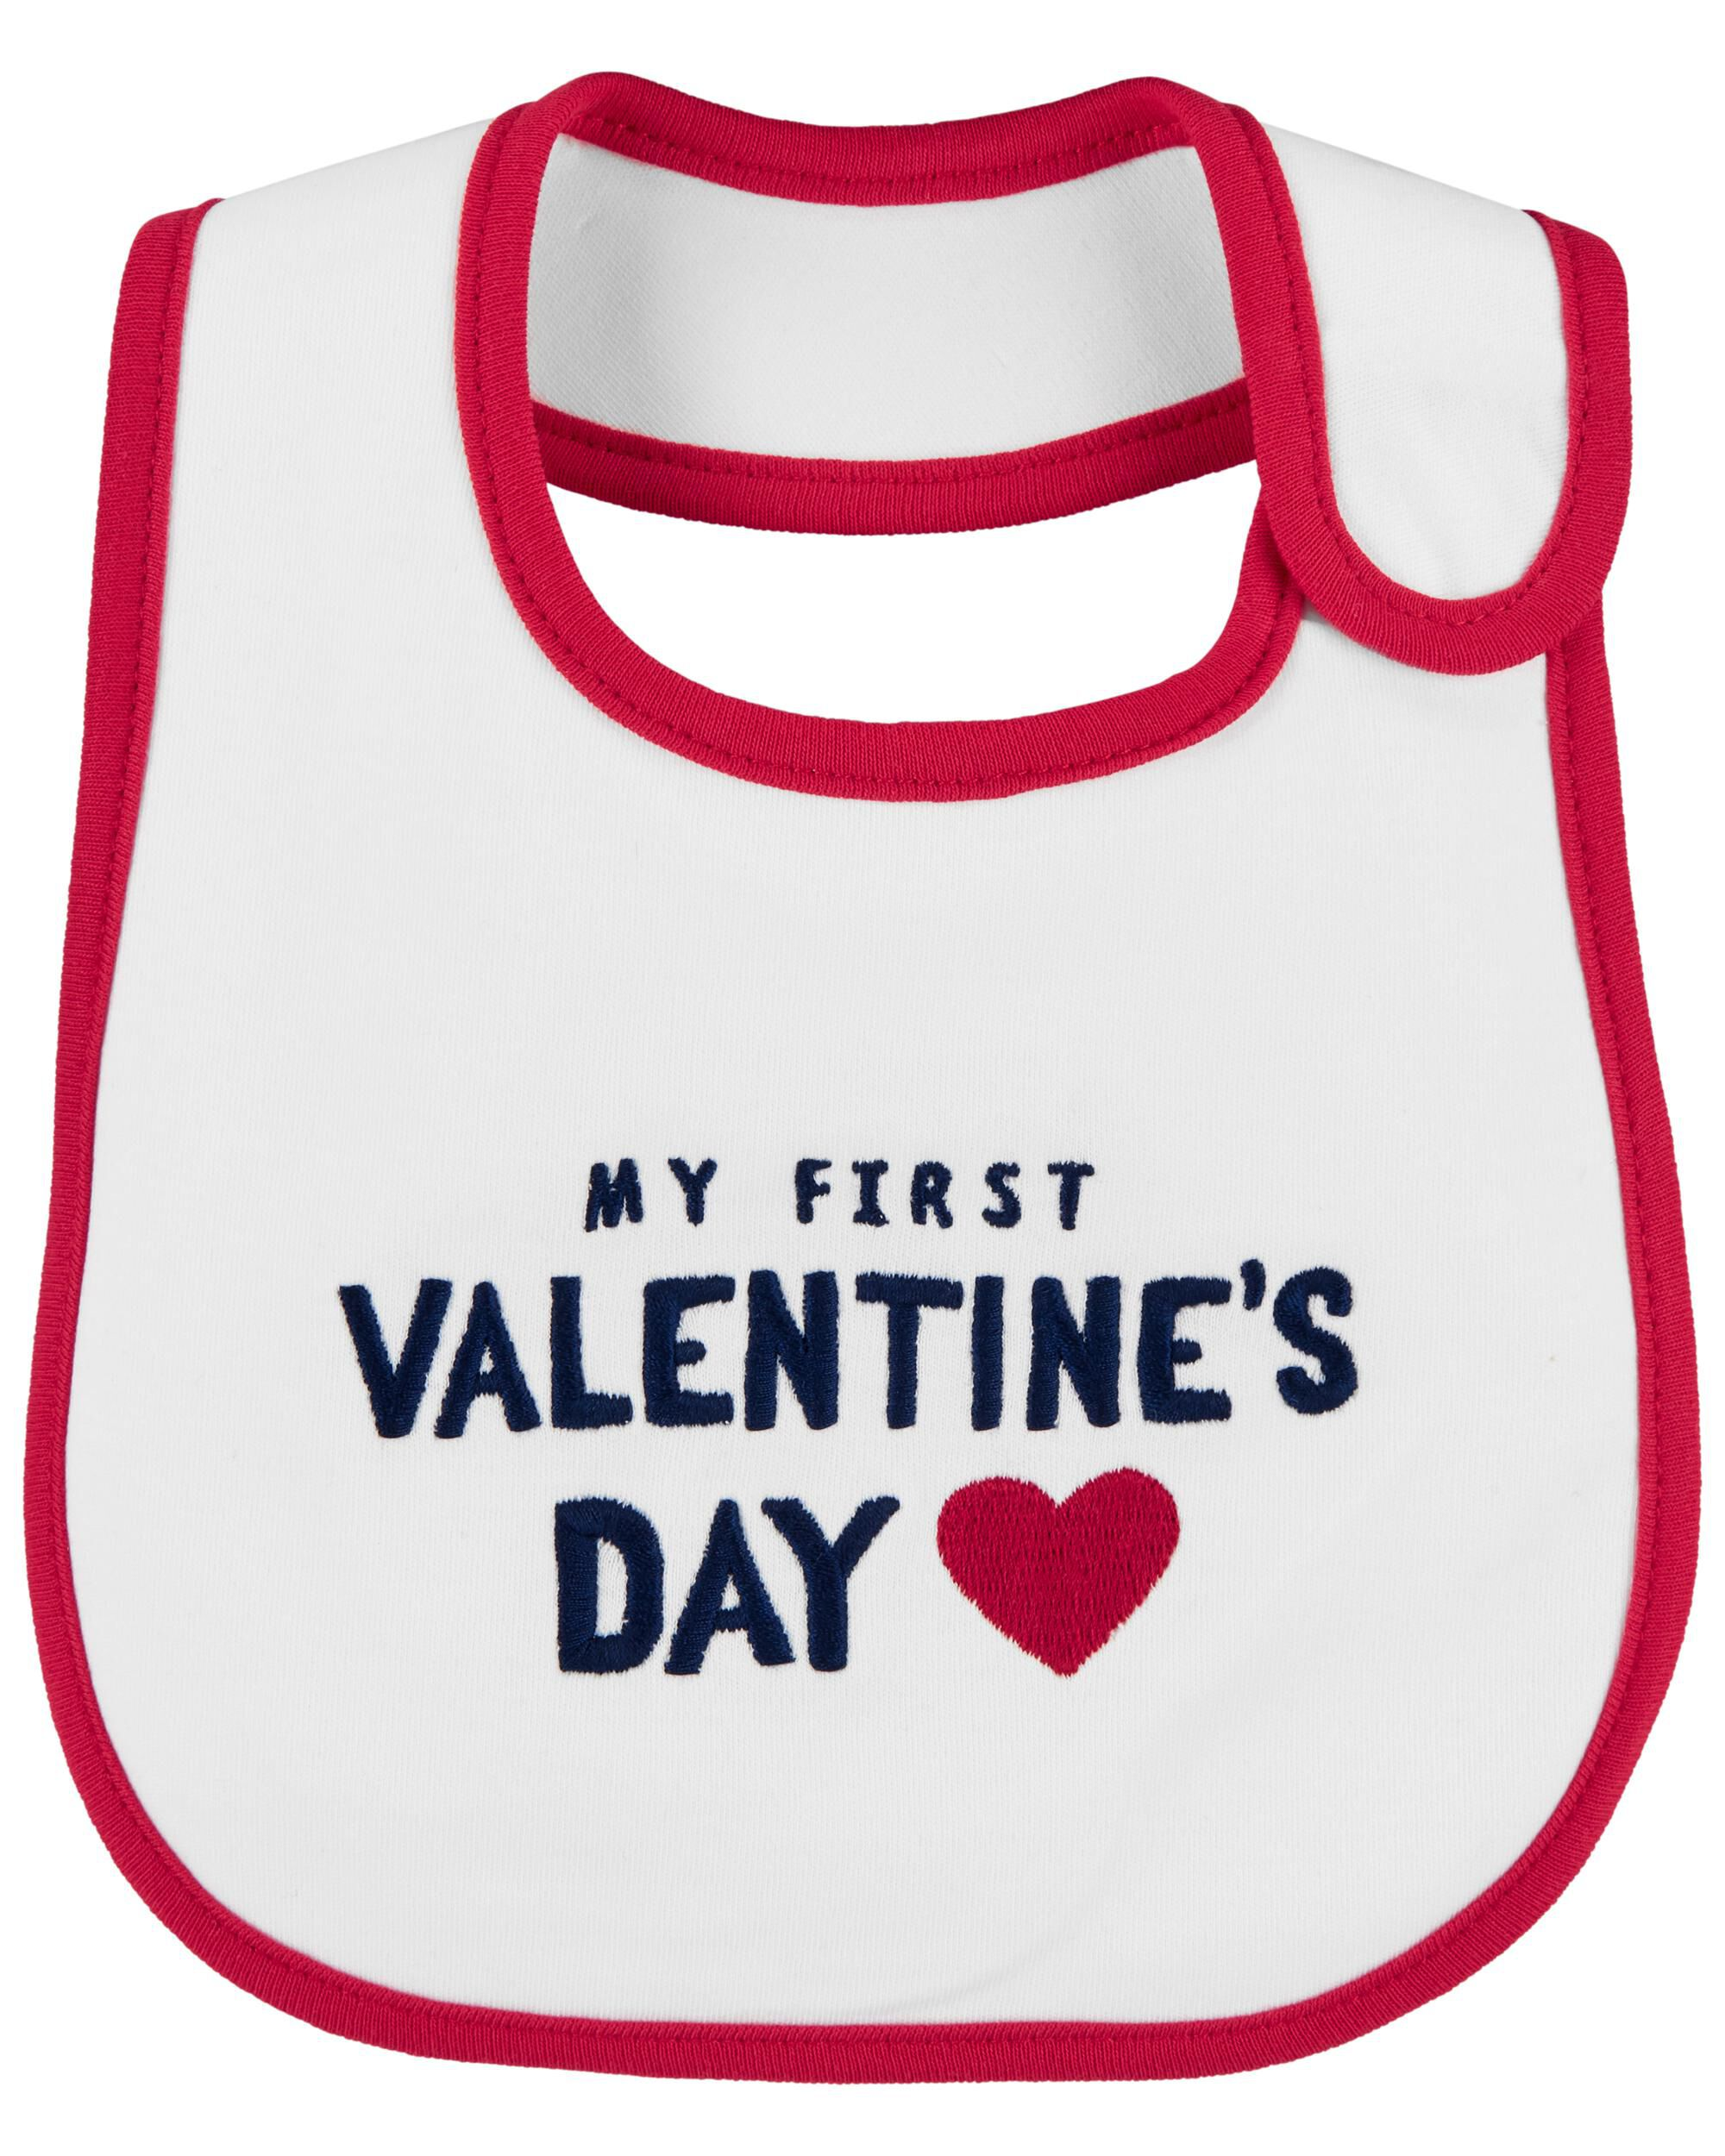 Oshkoshbgosh My First Valentines Day Teething Bib